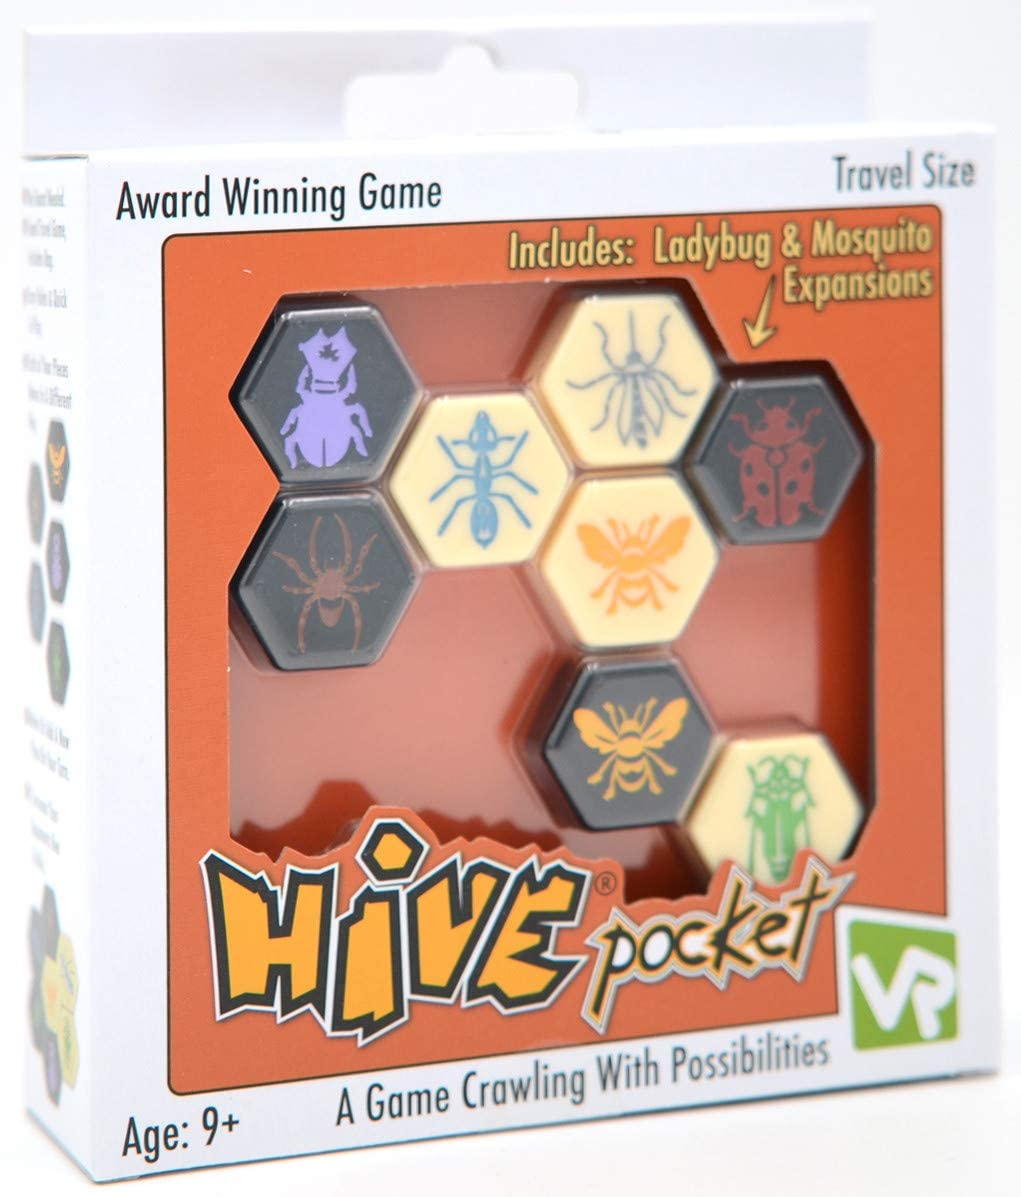 Hive Pocket Game Sweet Thrills Toronto